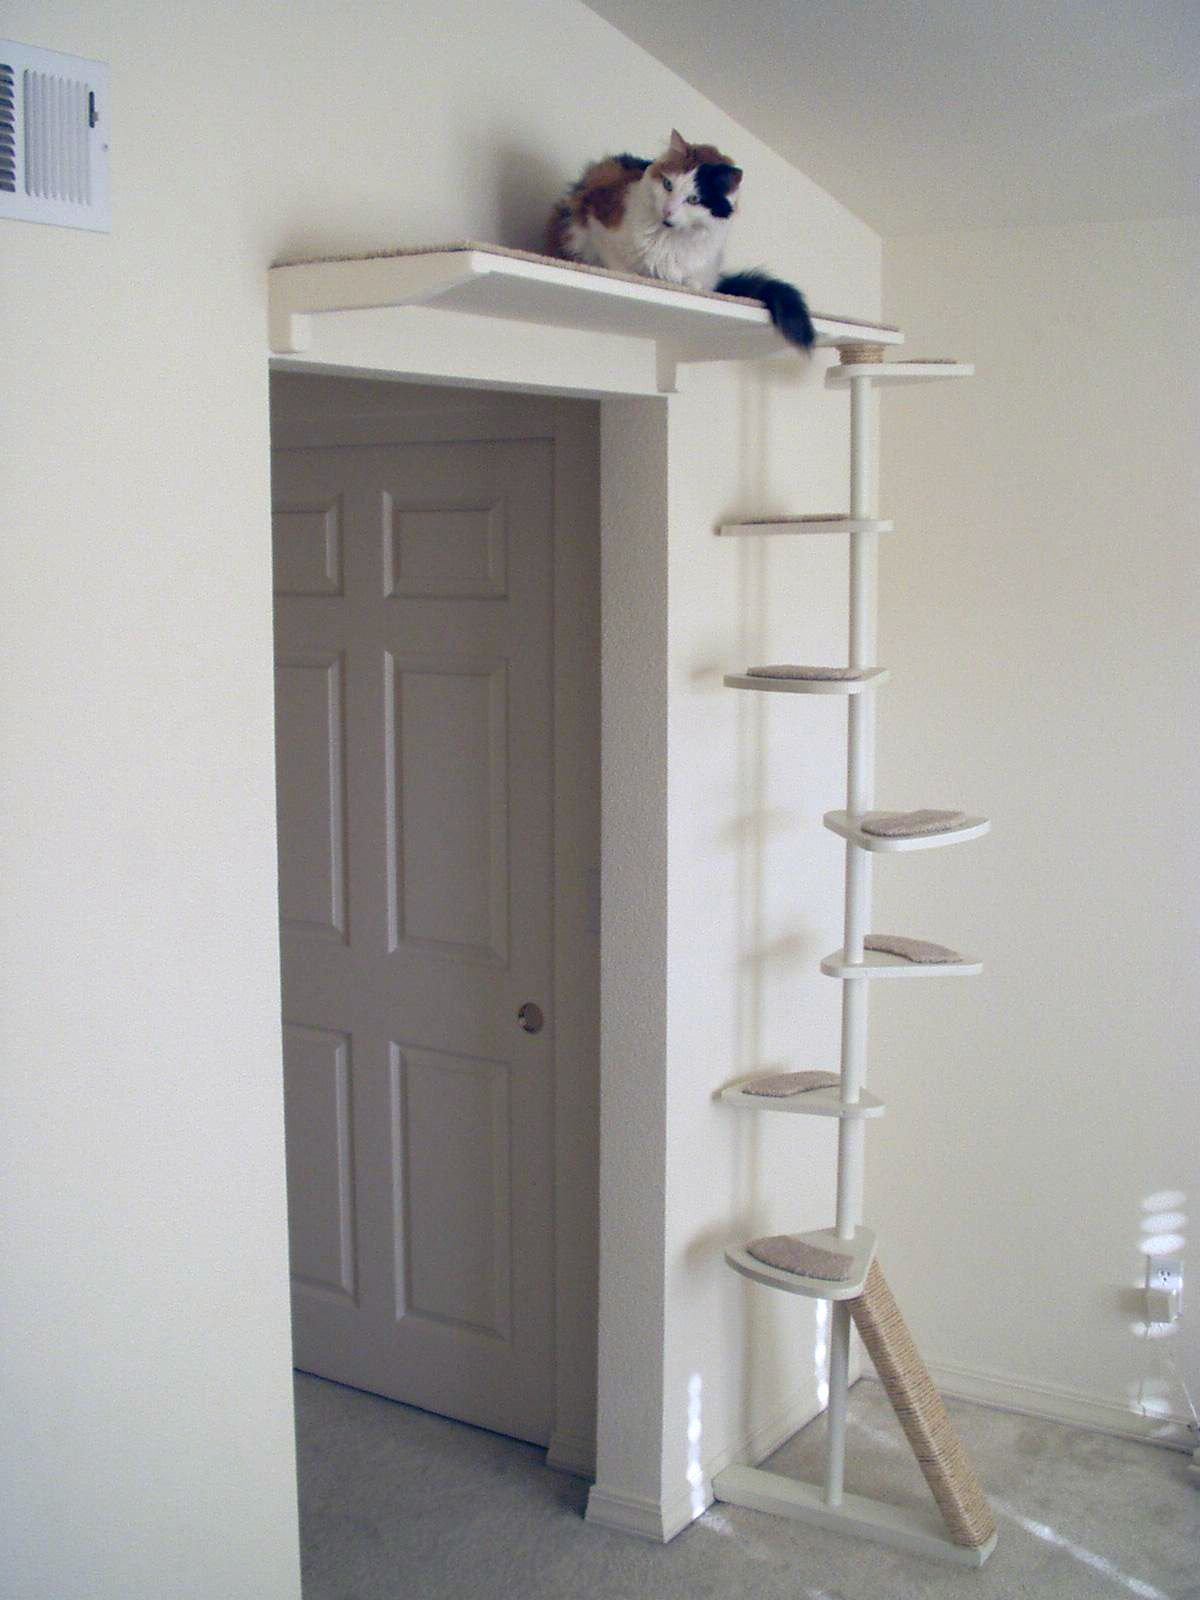 Pin by Catharine Stebbins on The . Ferals | Pinterest | Cat tree ...